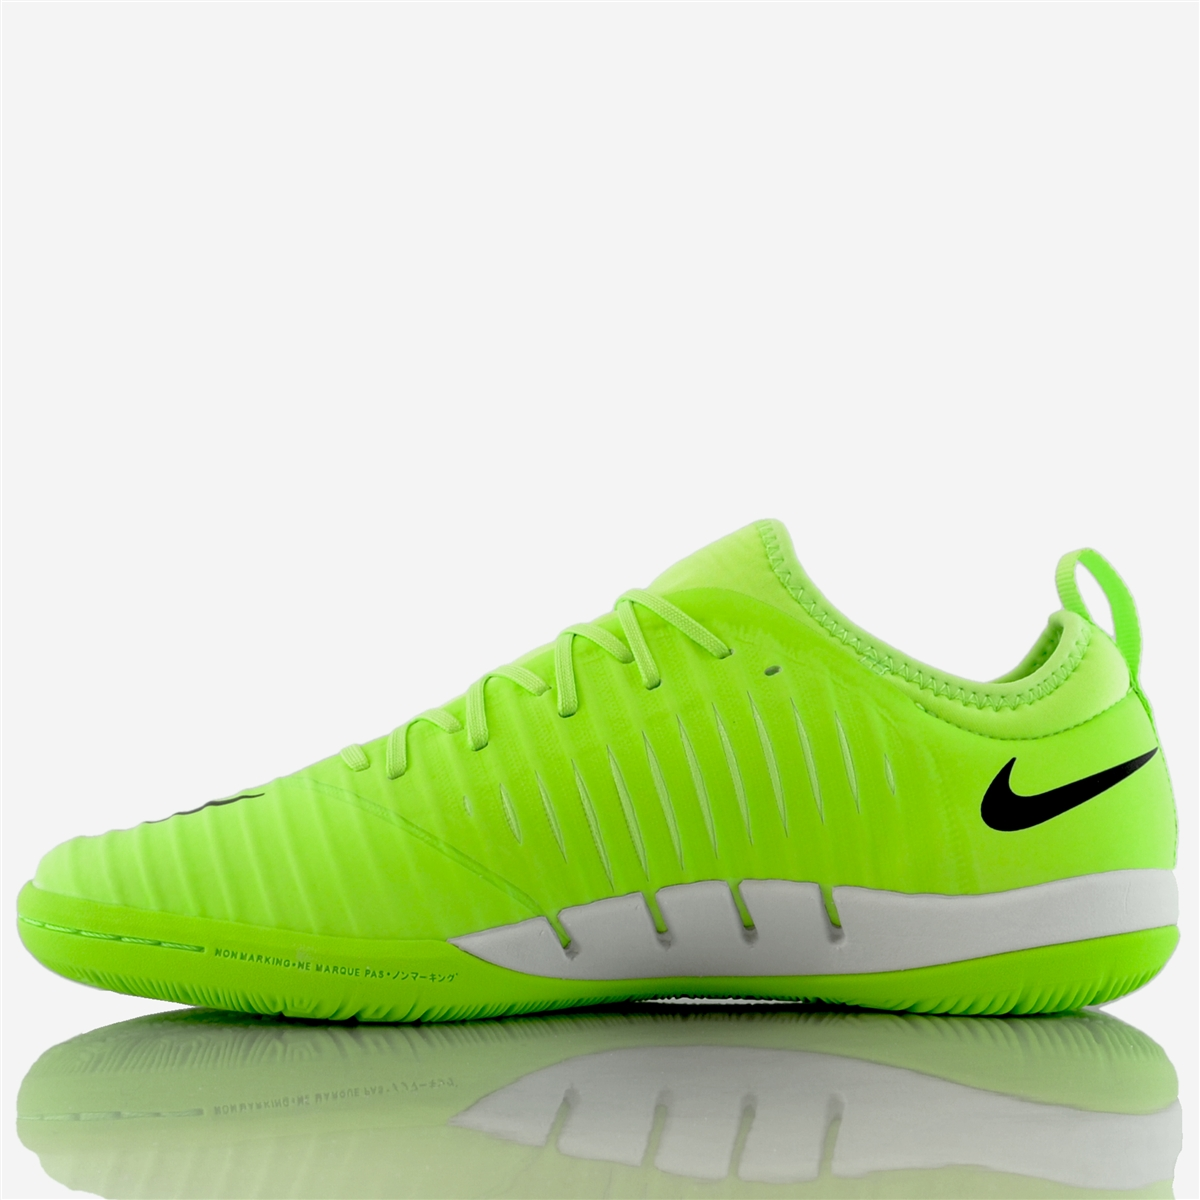 new style acb58 a529b Nike MercurialX Finale II IC Indoor Soccer Shoes (Flash Lime Black White)